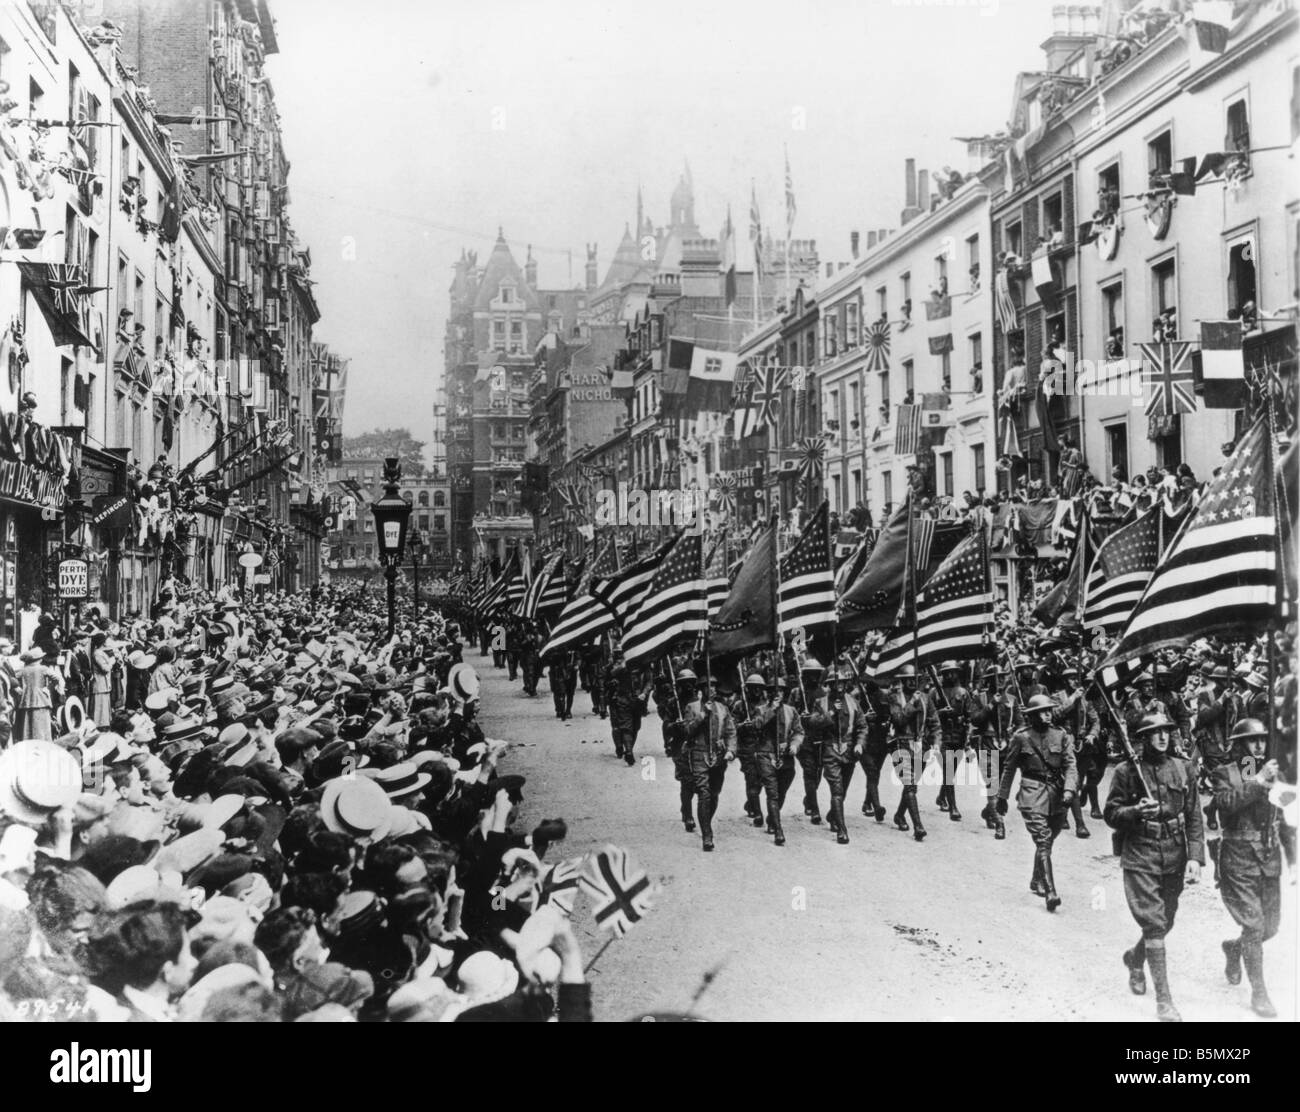 america in ww1 The united states enters world war i us president woodrow wilson sought to maintain us neutrality but was ultimately unable to keep the united states out of the war, largely because of escalating german aggression.